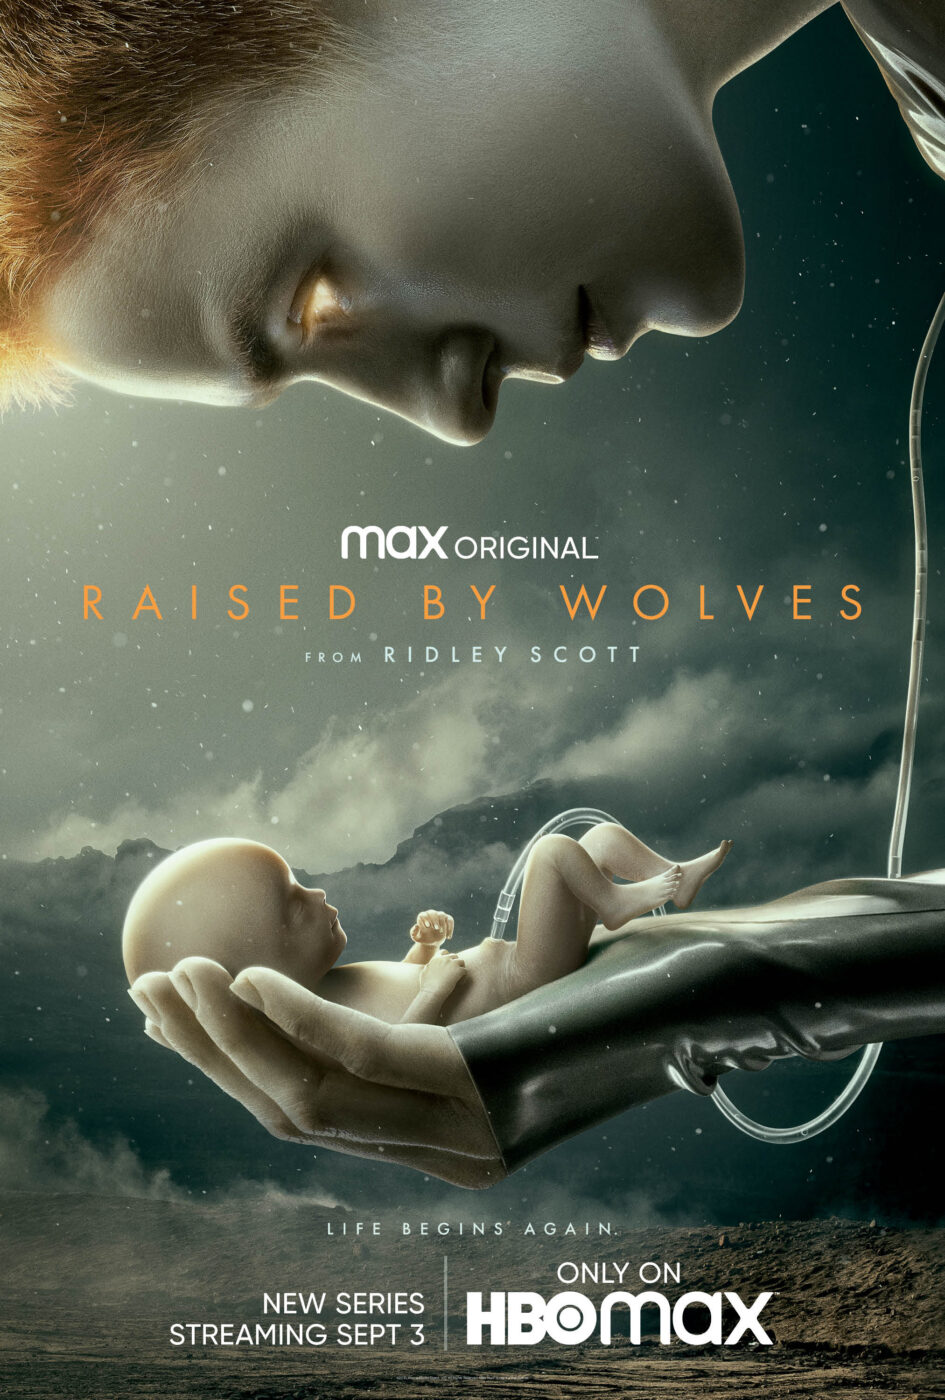 Ridley Scott's Raised by Wolves poster